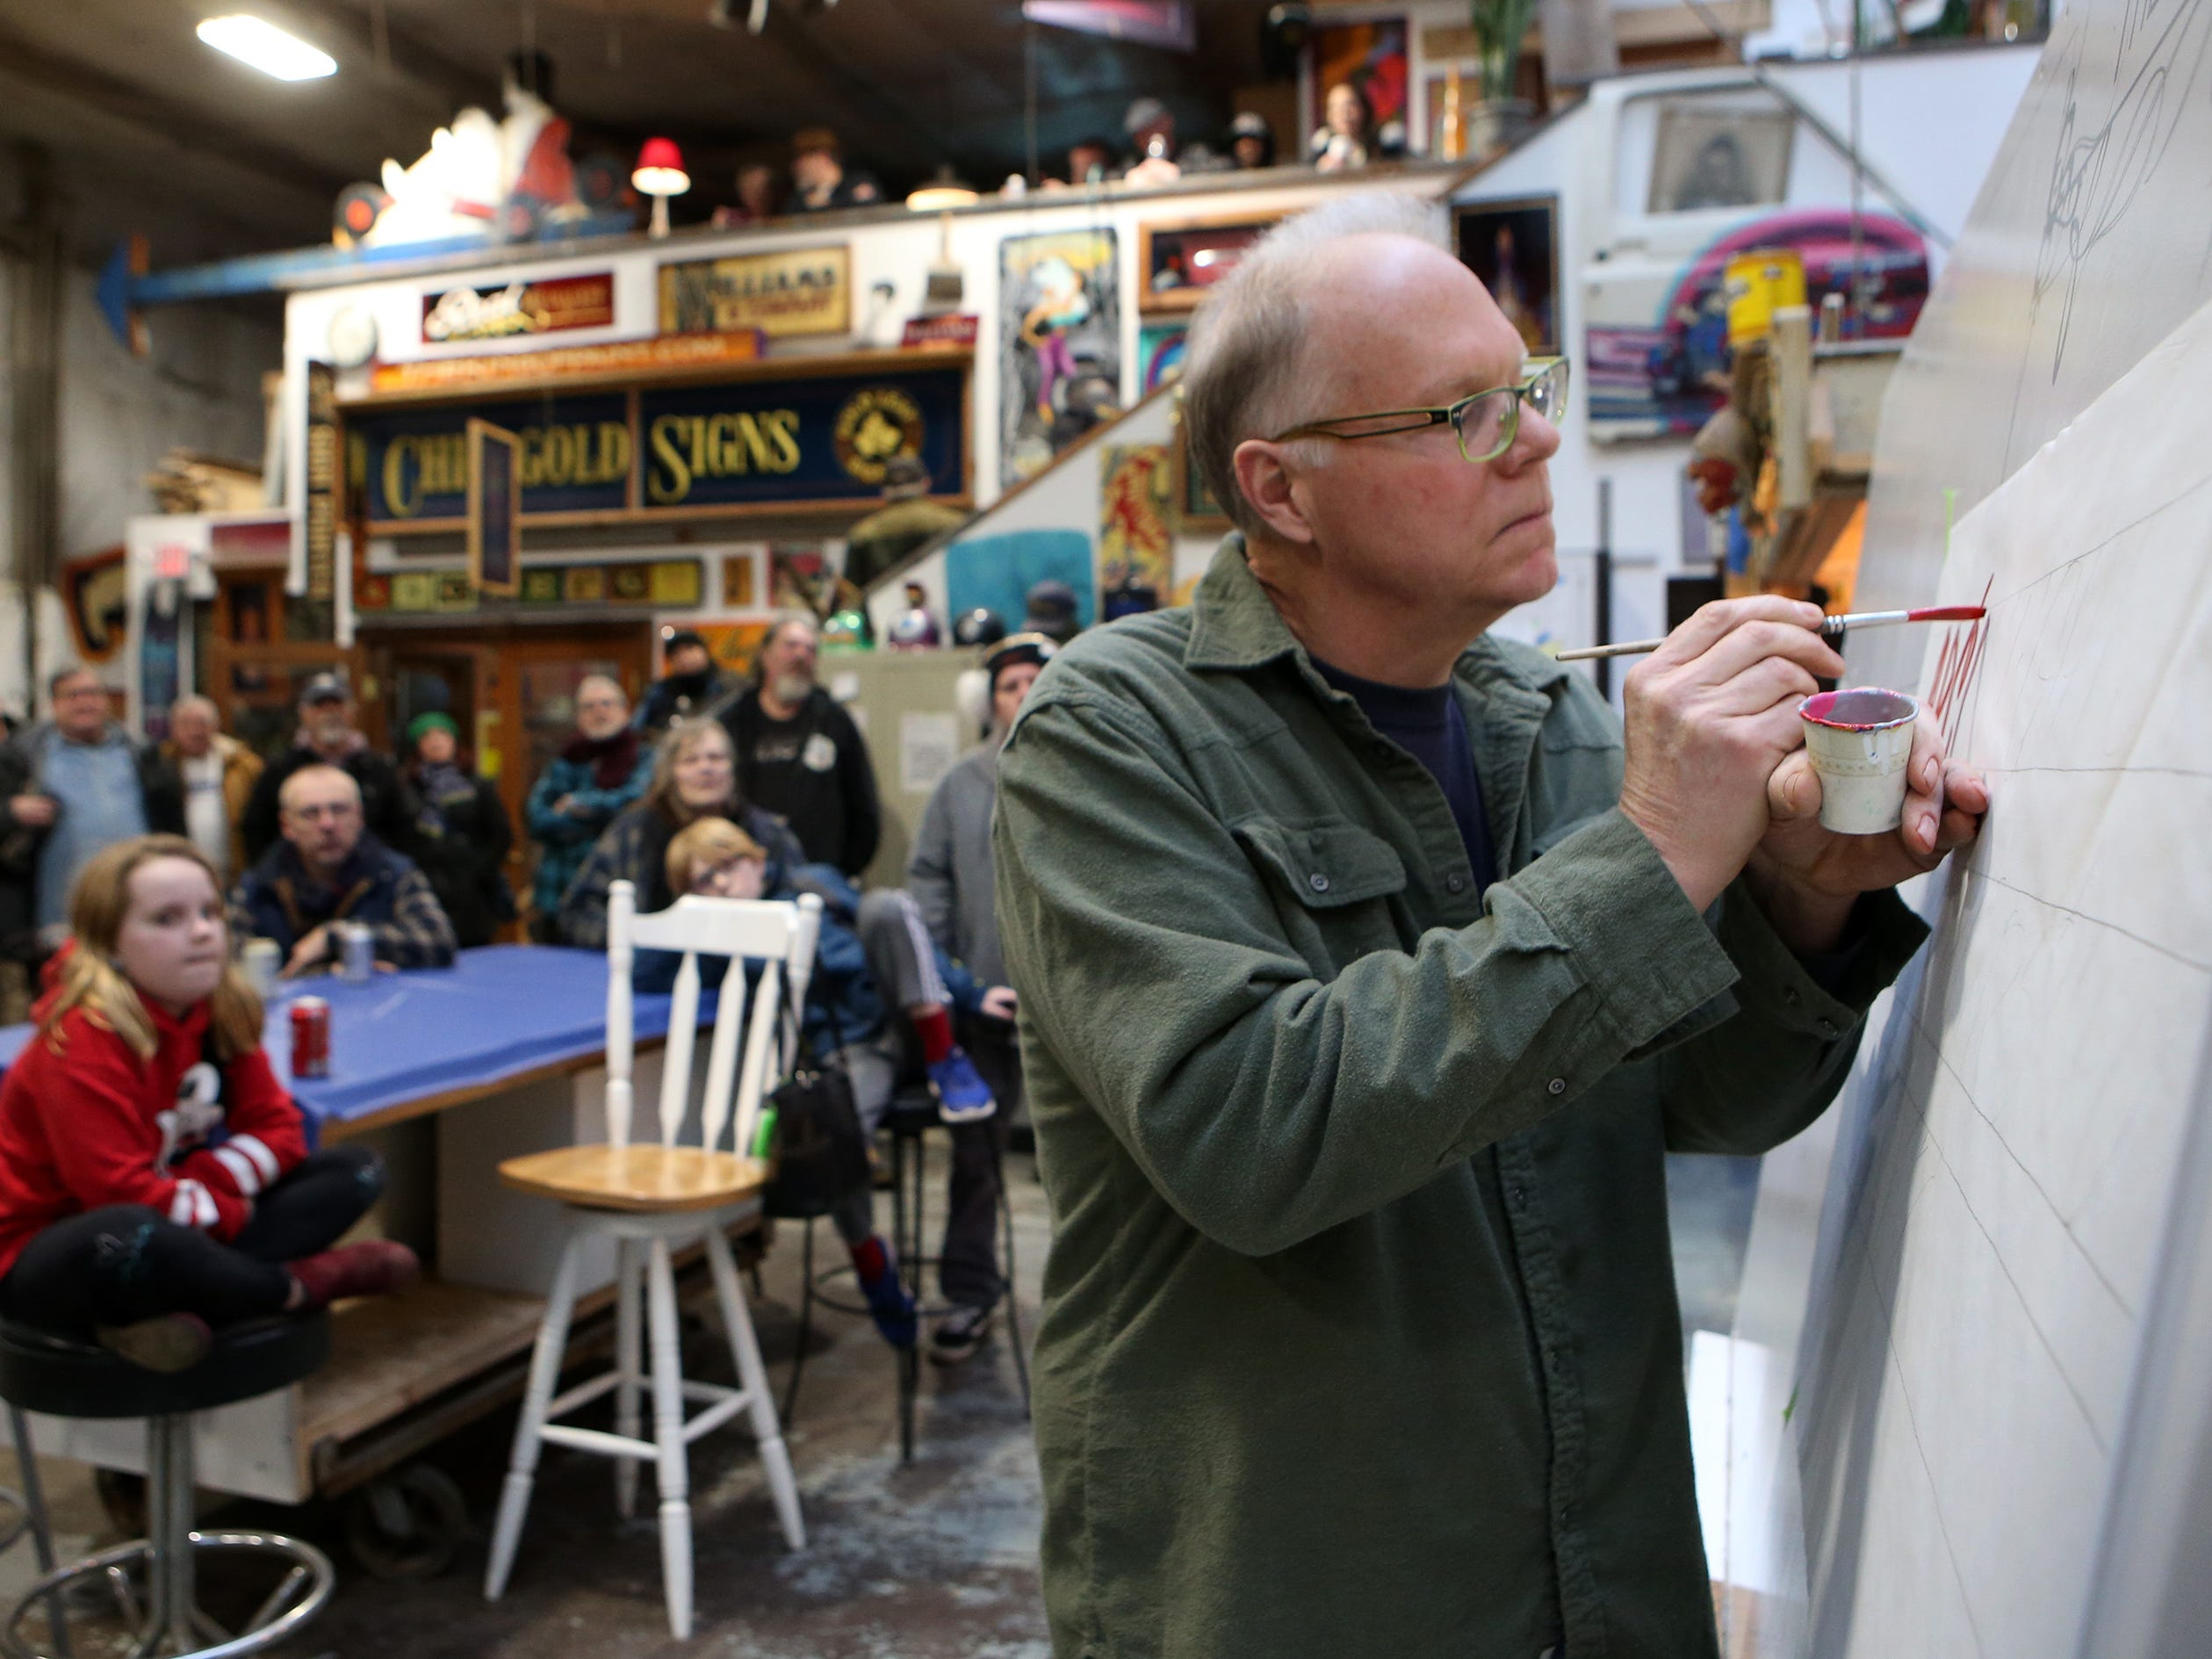 Jeff Williams, sign painter and owner of The King of Paint, demonstrates freehand lettering during an open house at the King of Paint shop in St. Francis on Jan. 19.